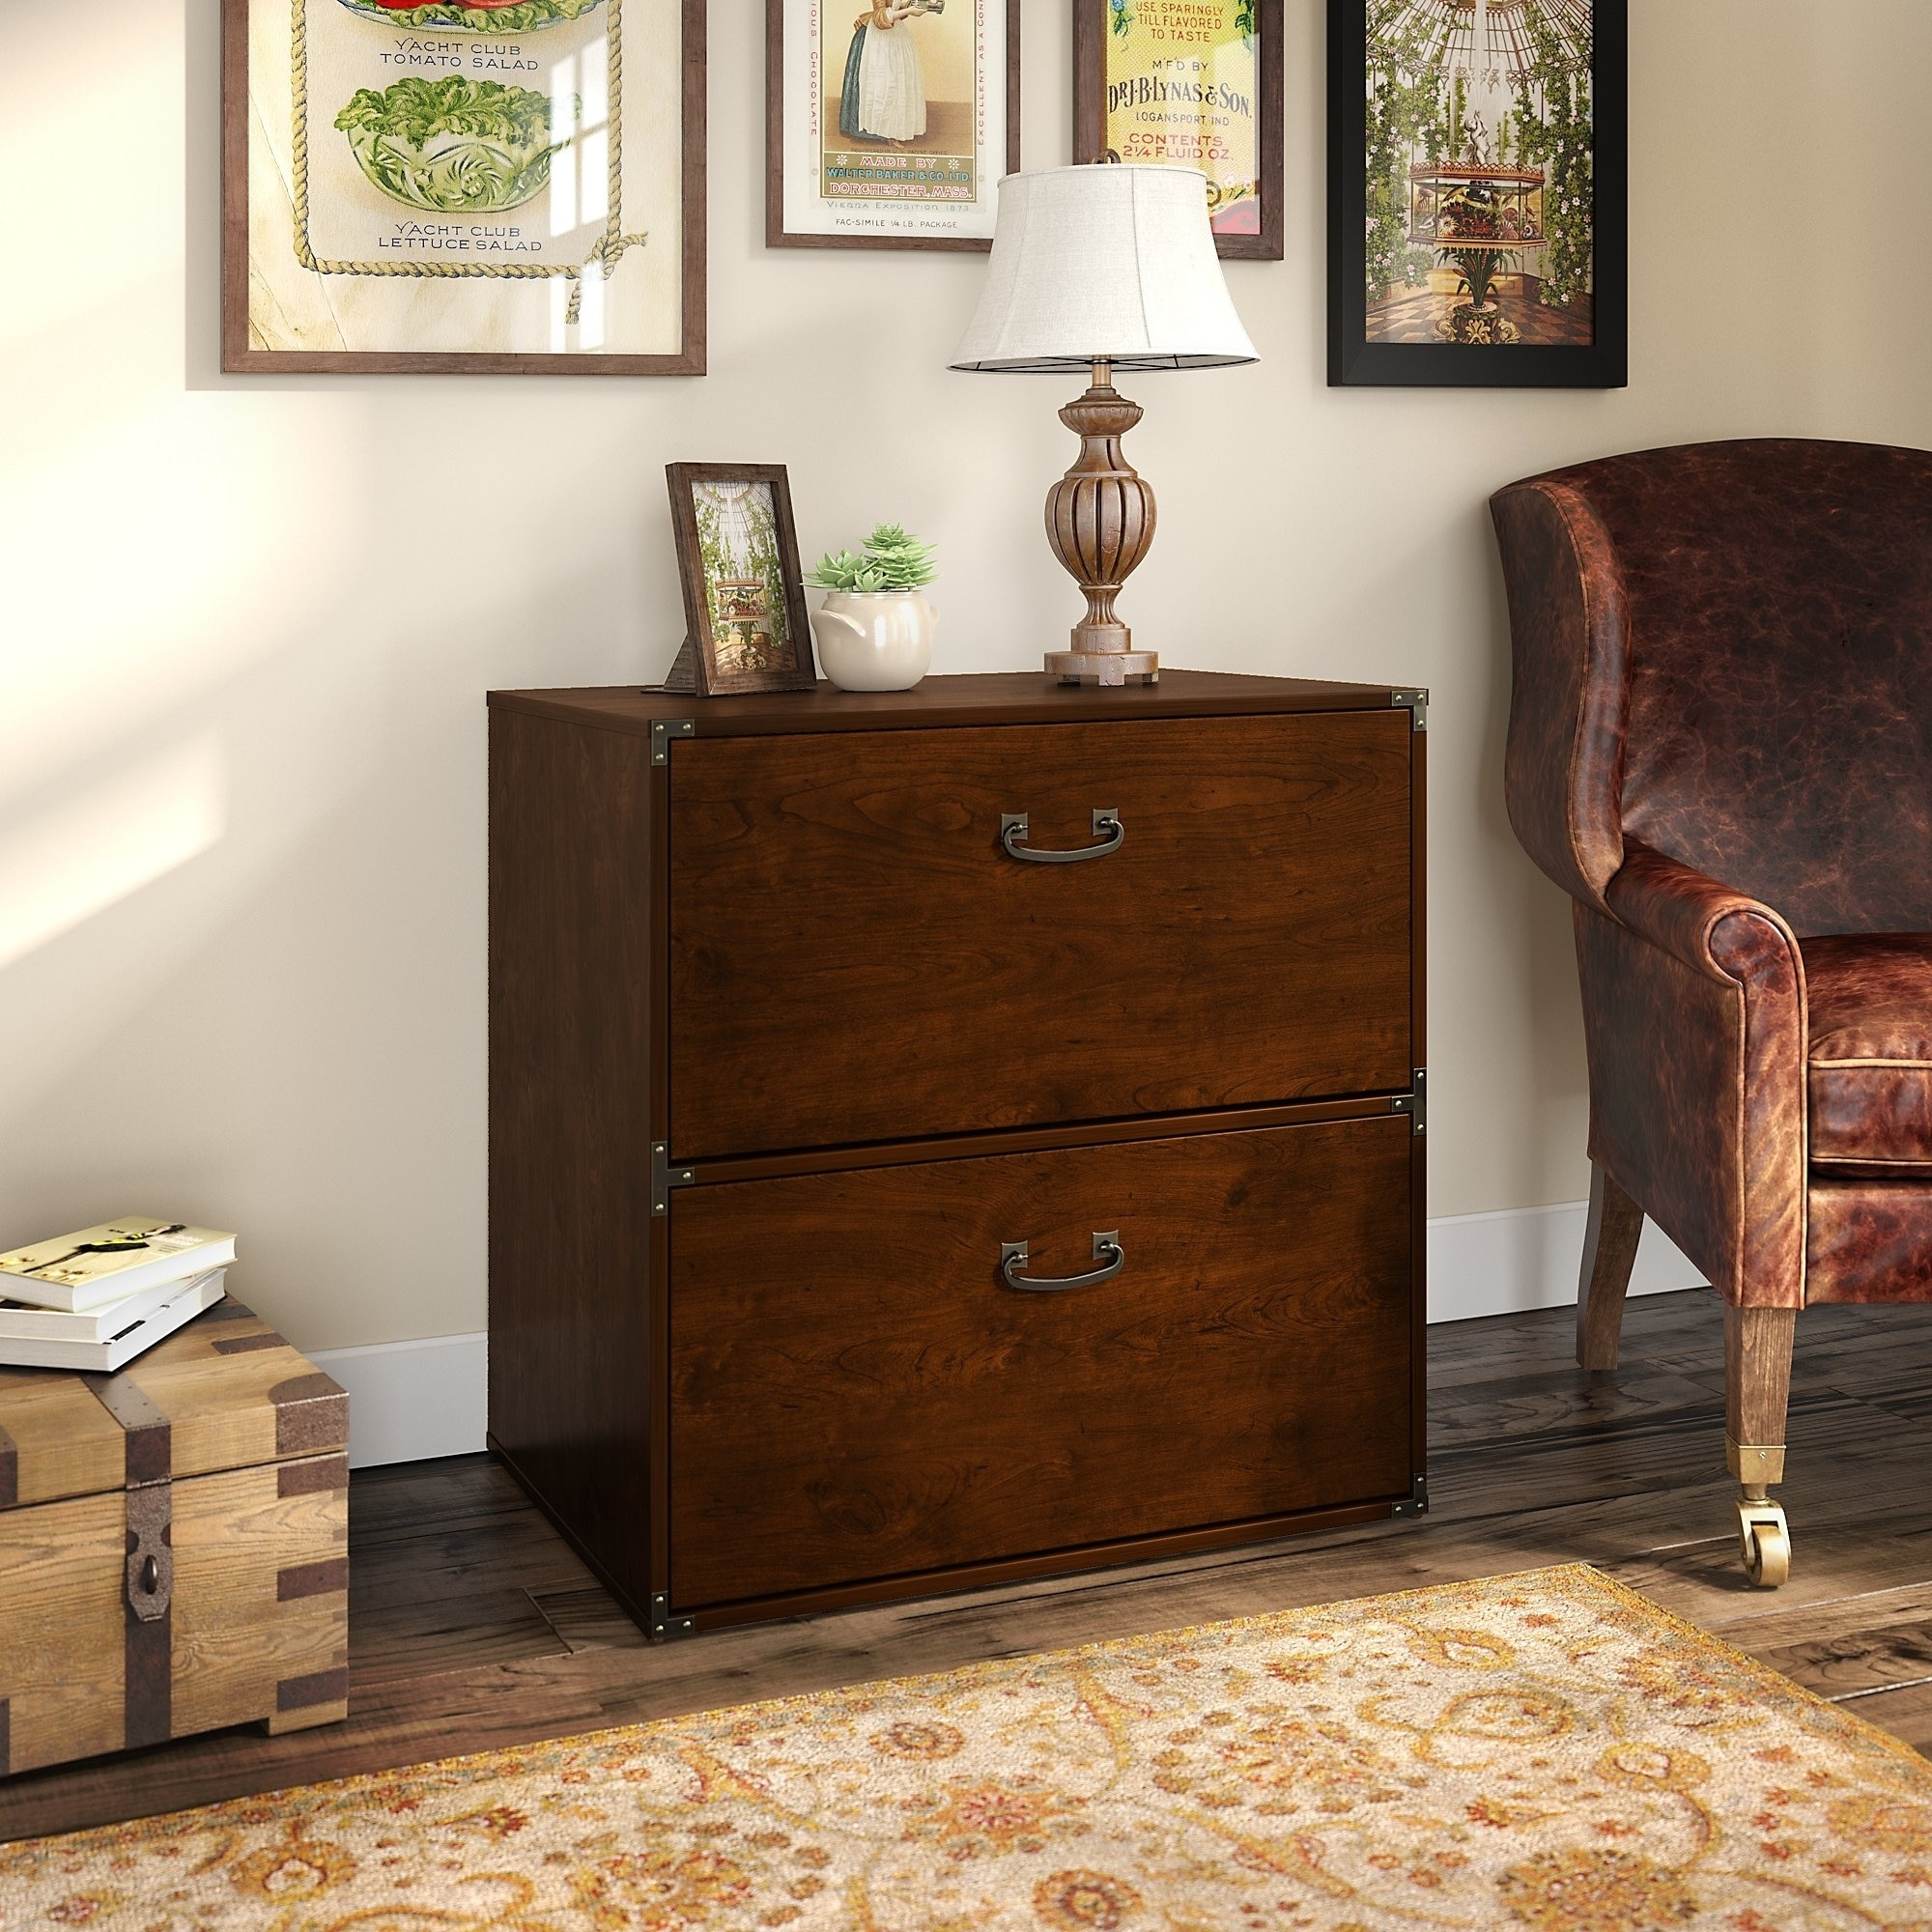 Shop kathy ireland office ironworks lateral file cabinet in coastal cherry free shipping today overstock com 14037844